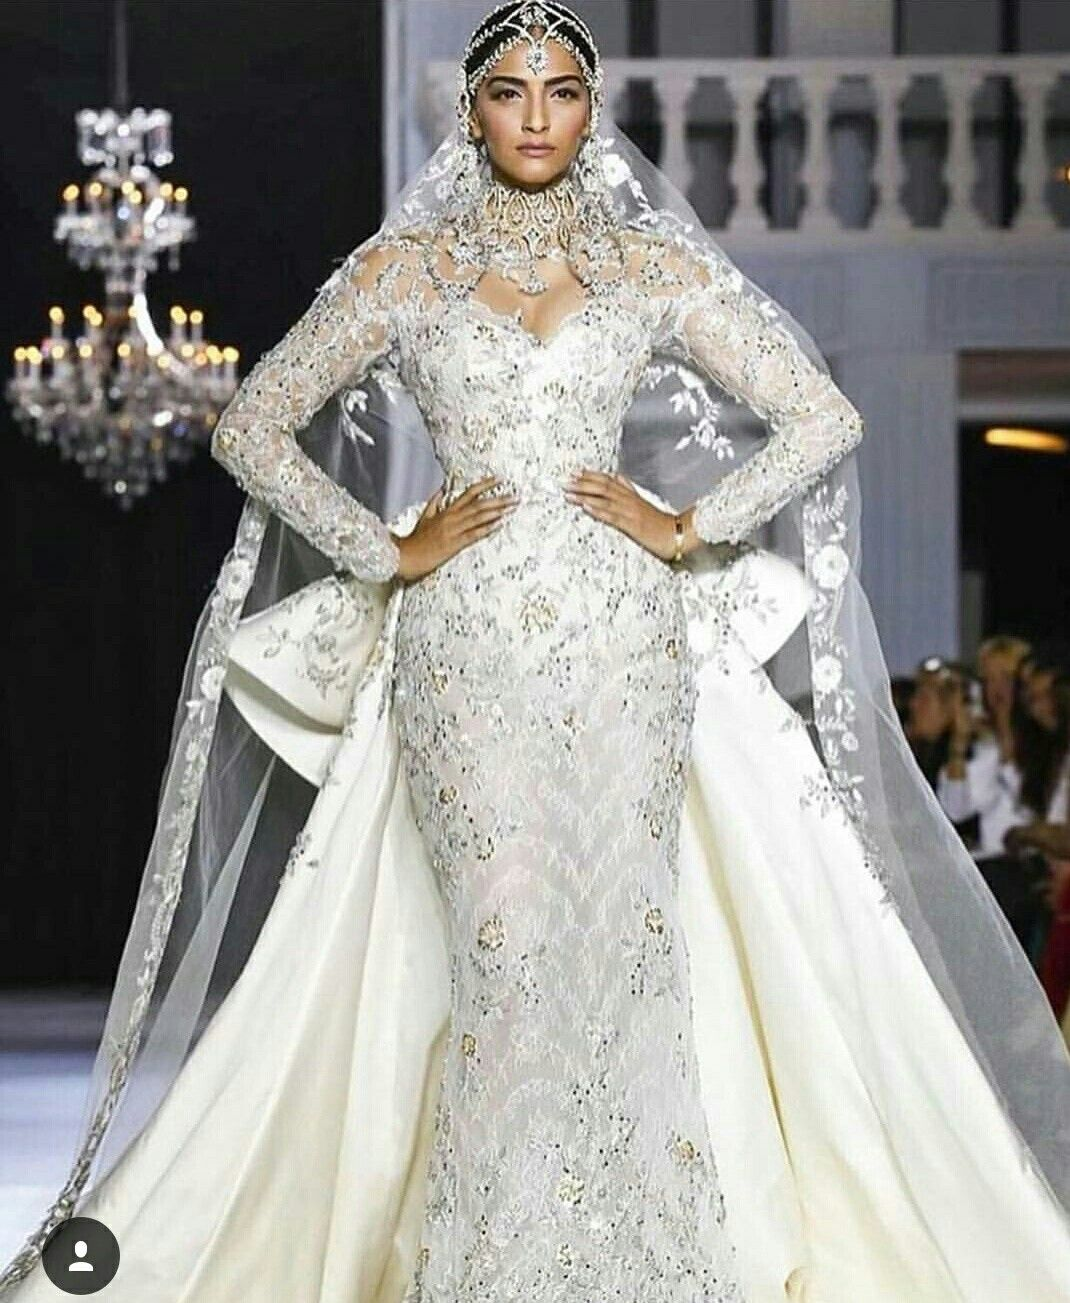 Sonam Kapoor in Ralph and Russo Fall Couture 2017 finale wedding gown. Born  of Web Sonam Kapoor